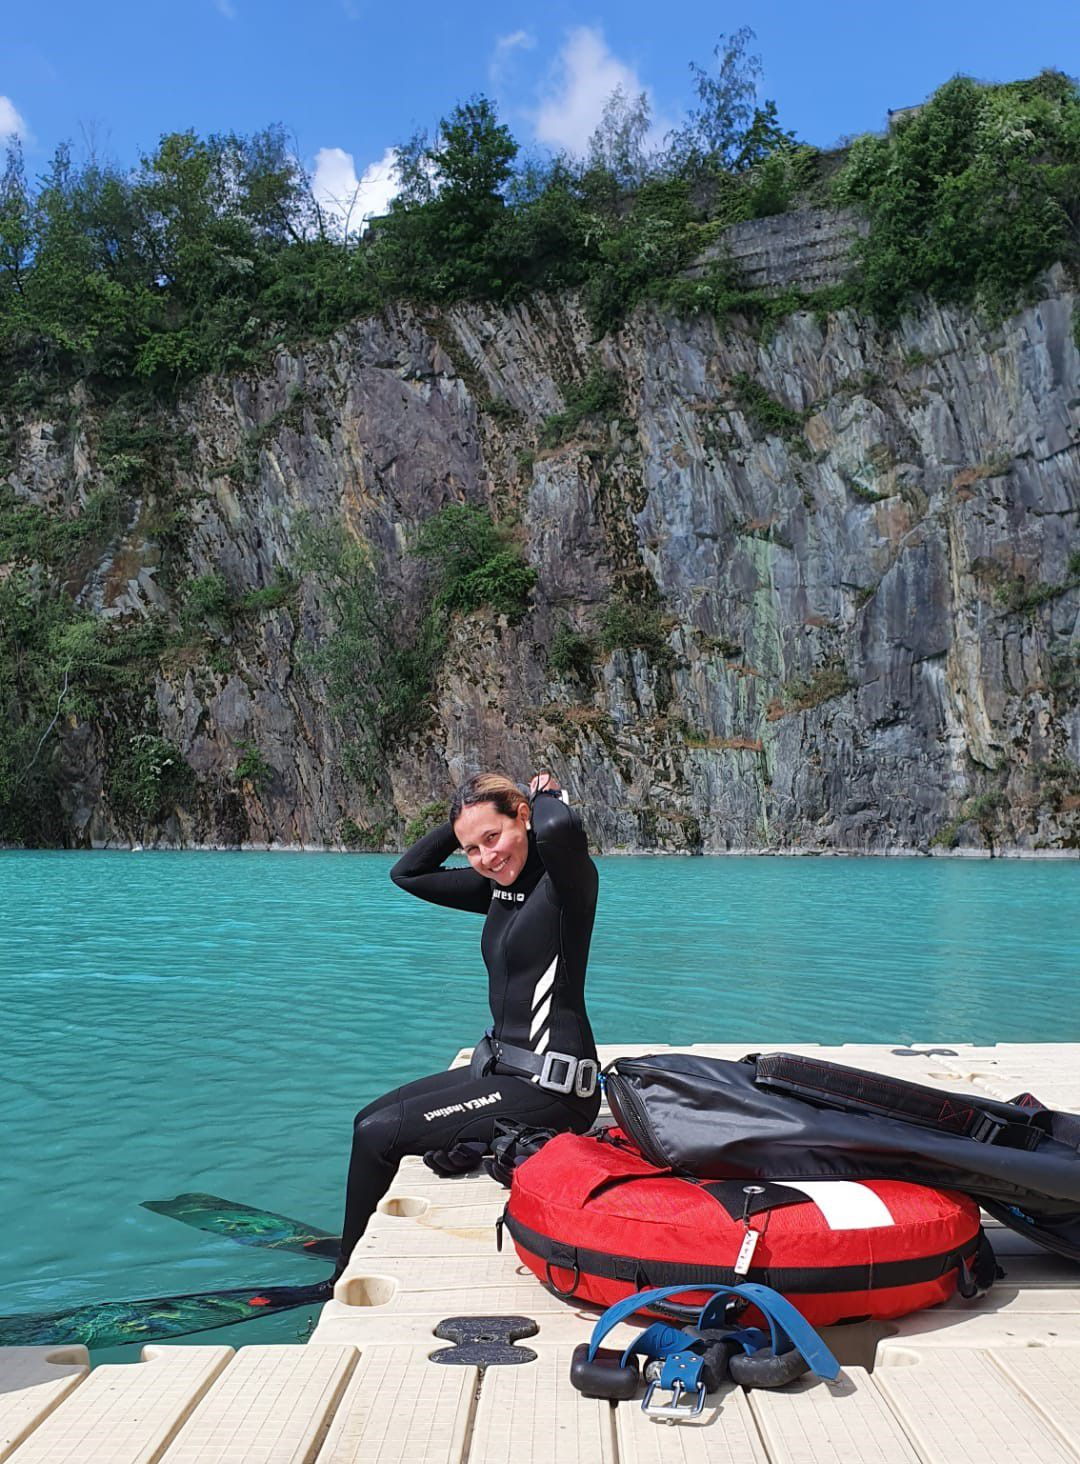 Daniela before her first ever dive in cold open water ^^ (photo by Samuel Fernandez).